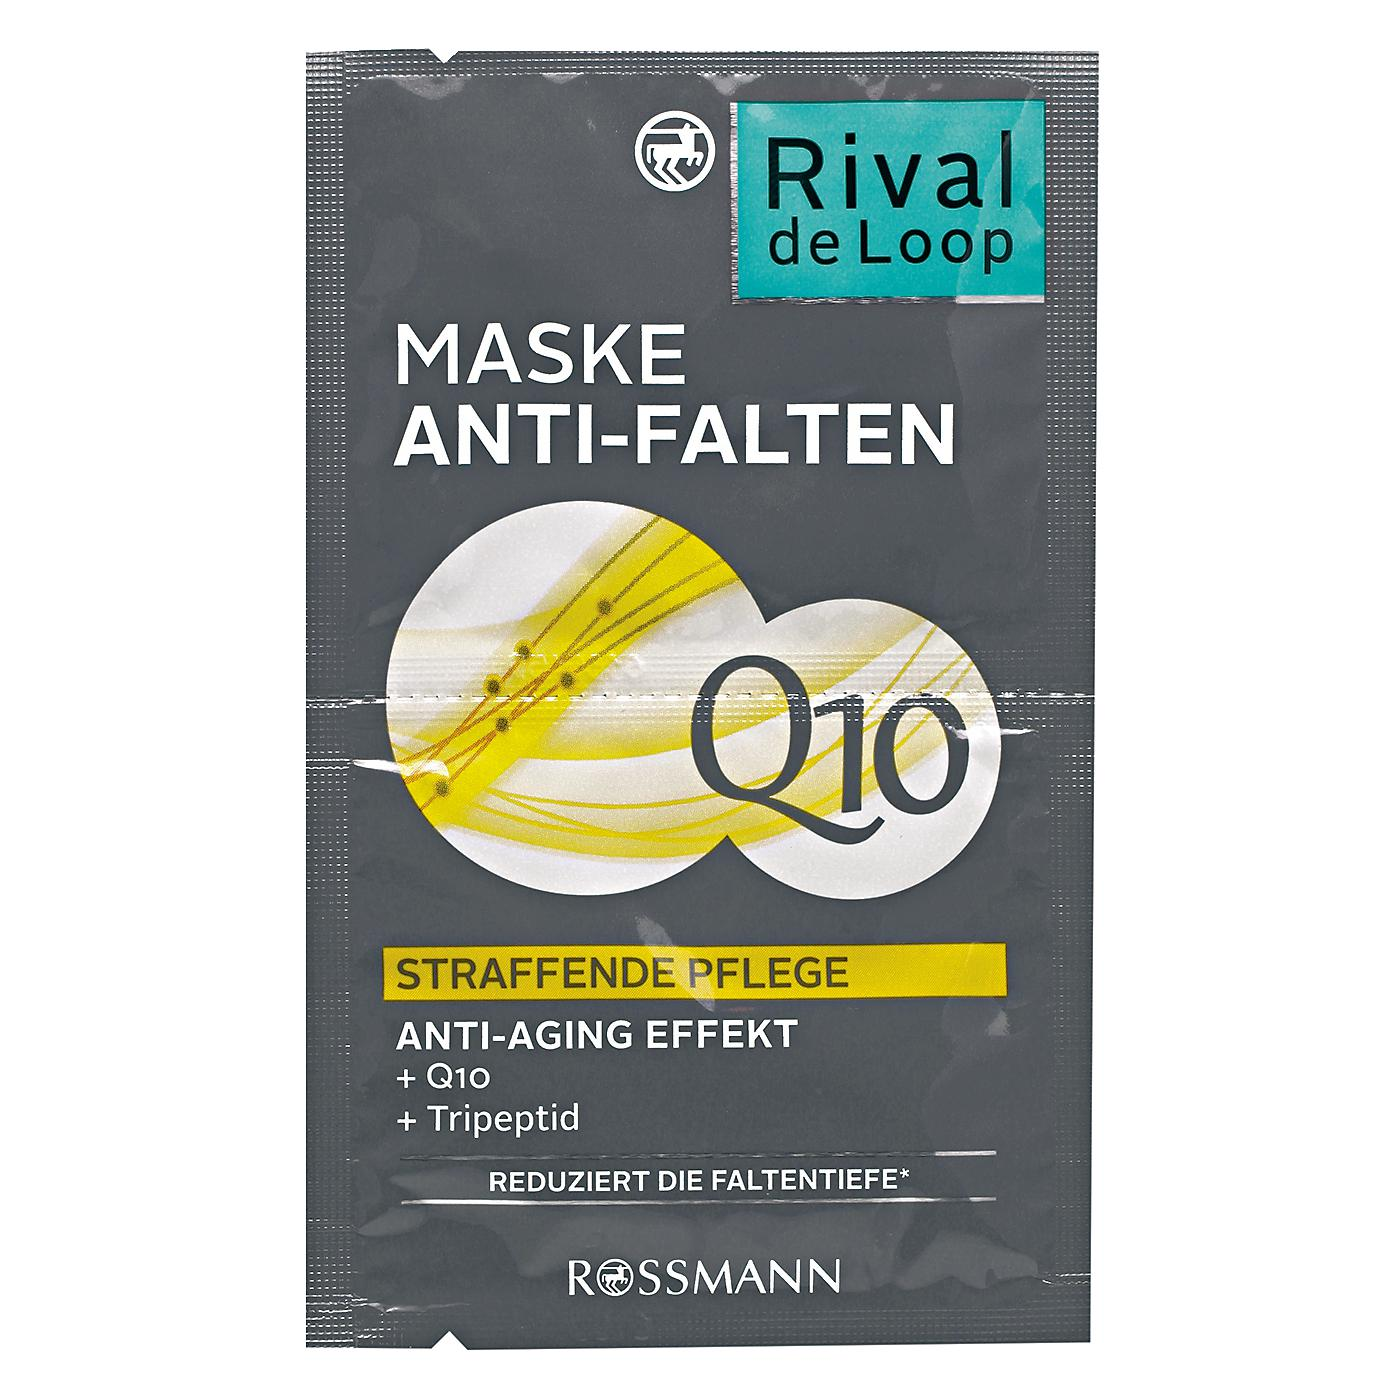 Rival De Loop Anti Falten Maske Q10 Rossmann Business Partner